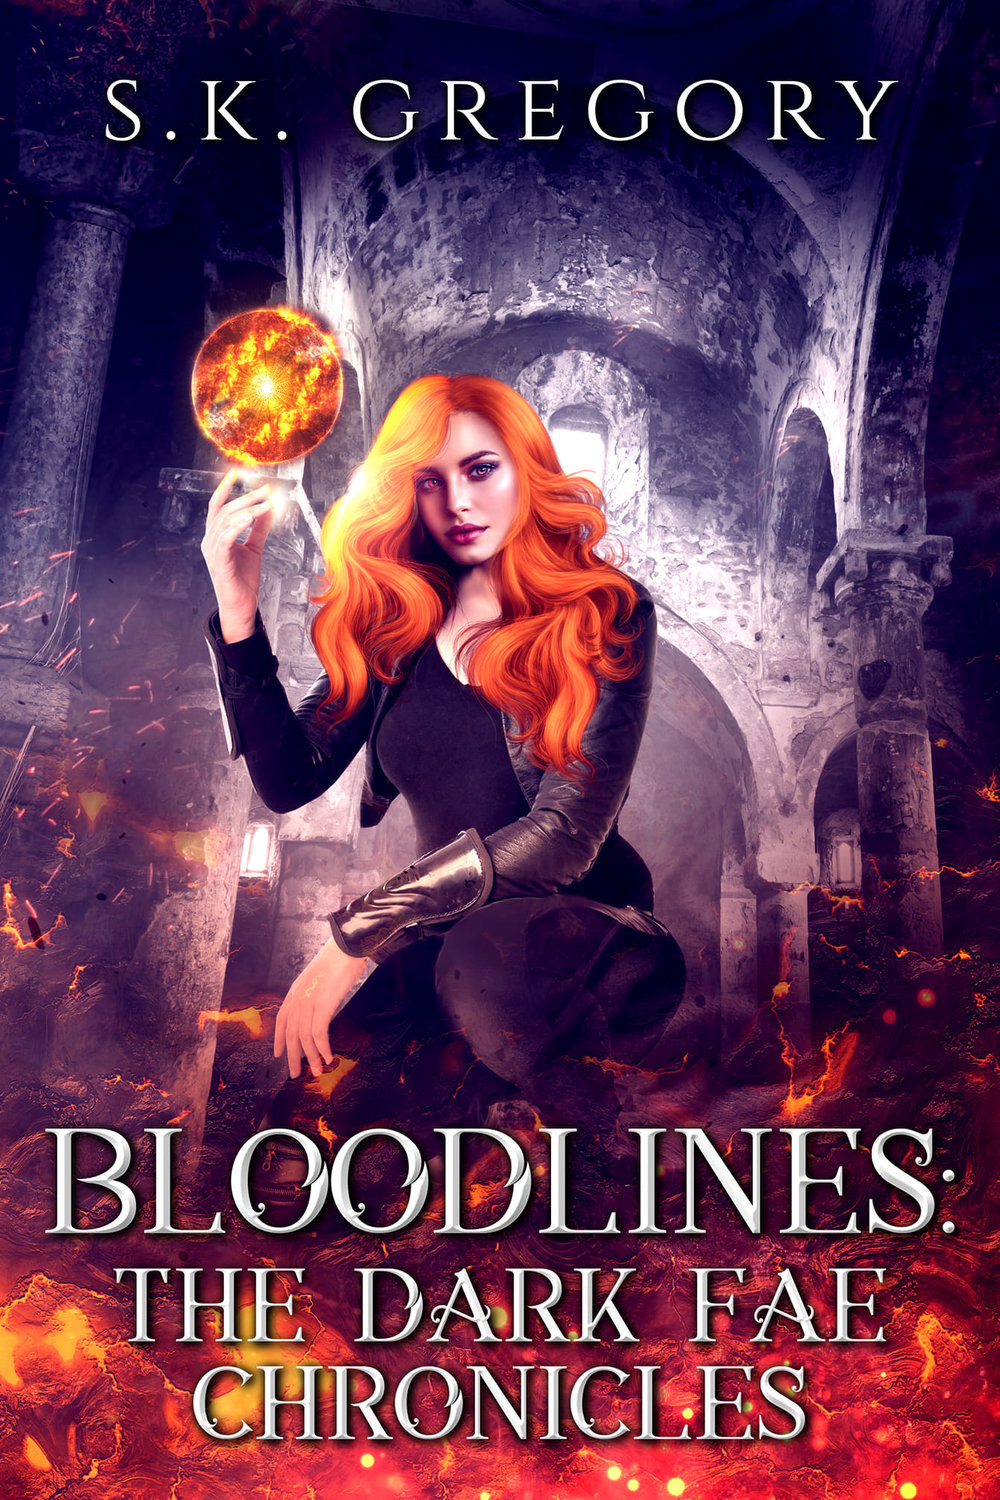 BLOODLINES: THE DARK FAE CHRONICLES   S. K. Gregory     When Nova discovers her Fae heritage, she becomes a target.  With the Dark Fae Queen trying to eradicate humans, Nova may be their last hope.